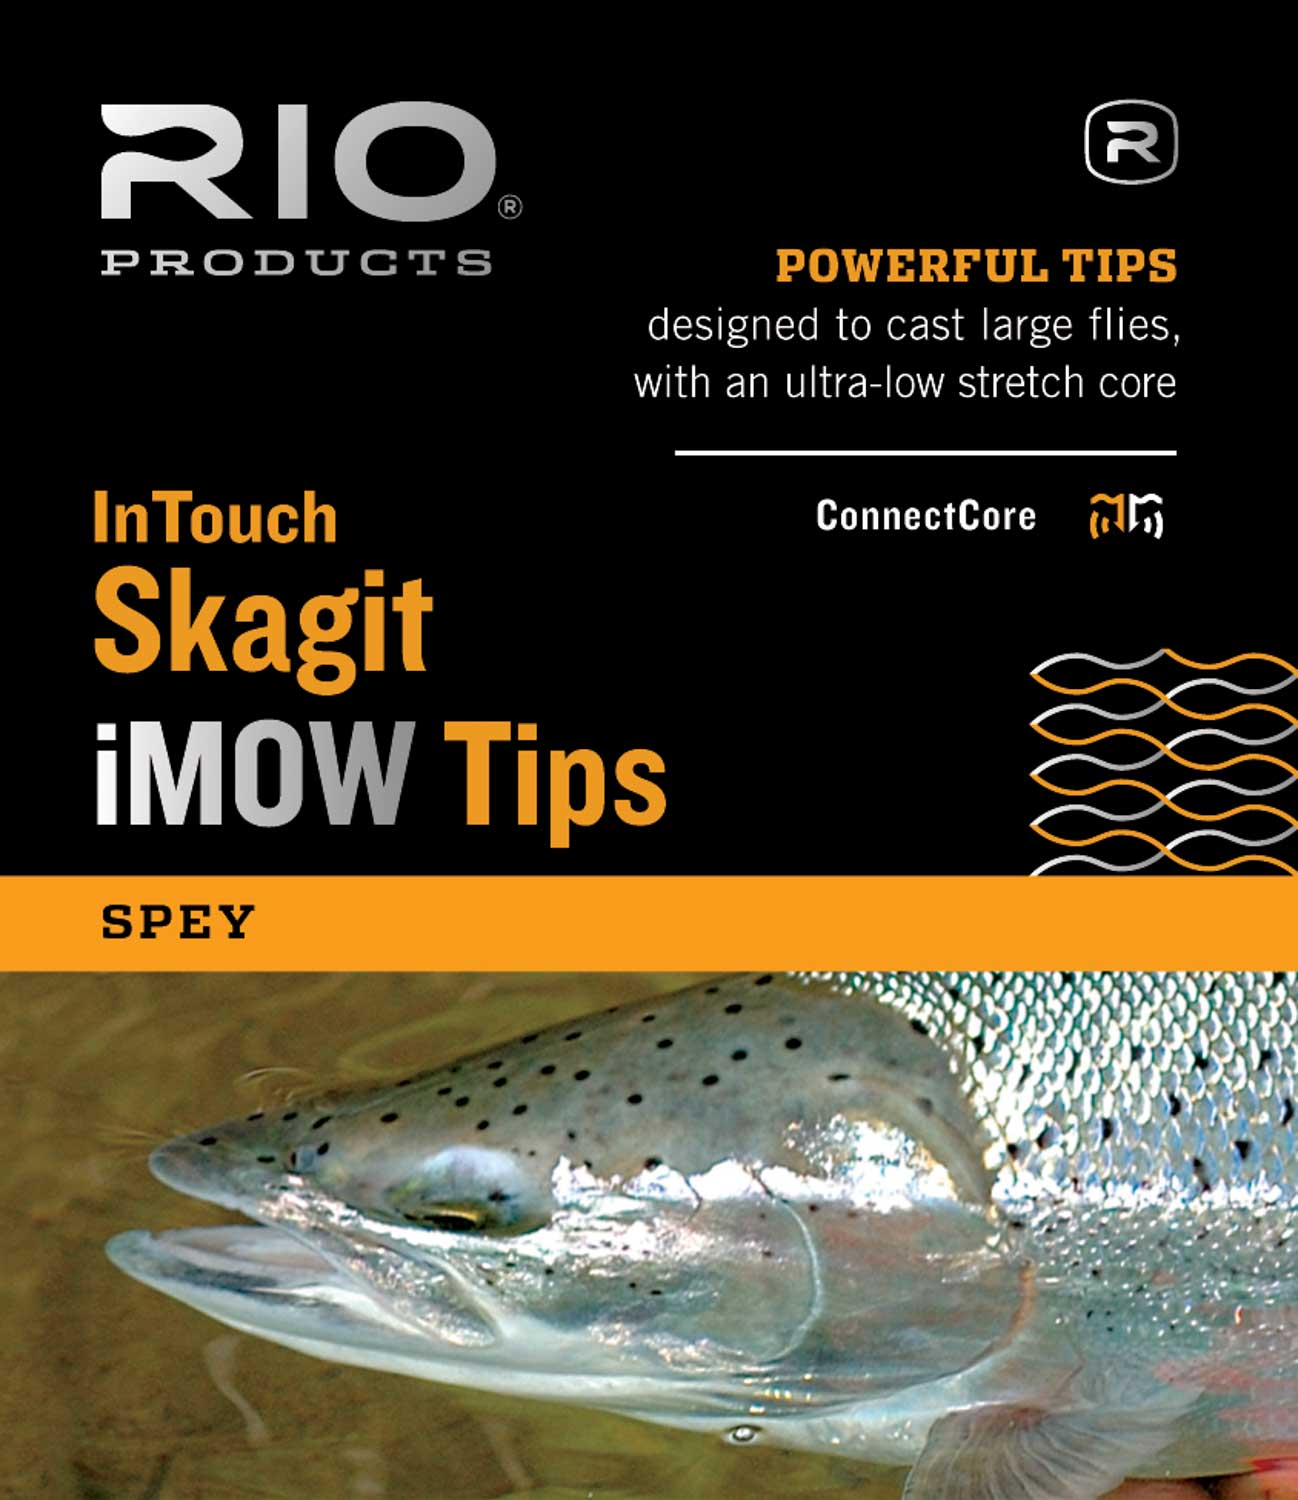 Rio Skagit iMOW Tips (Medium)